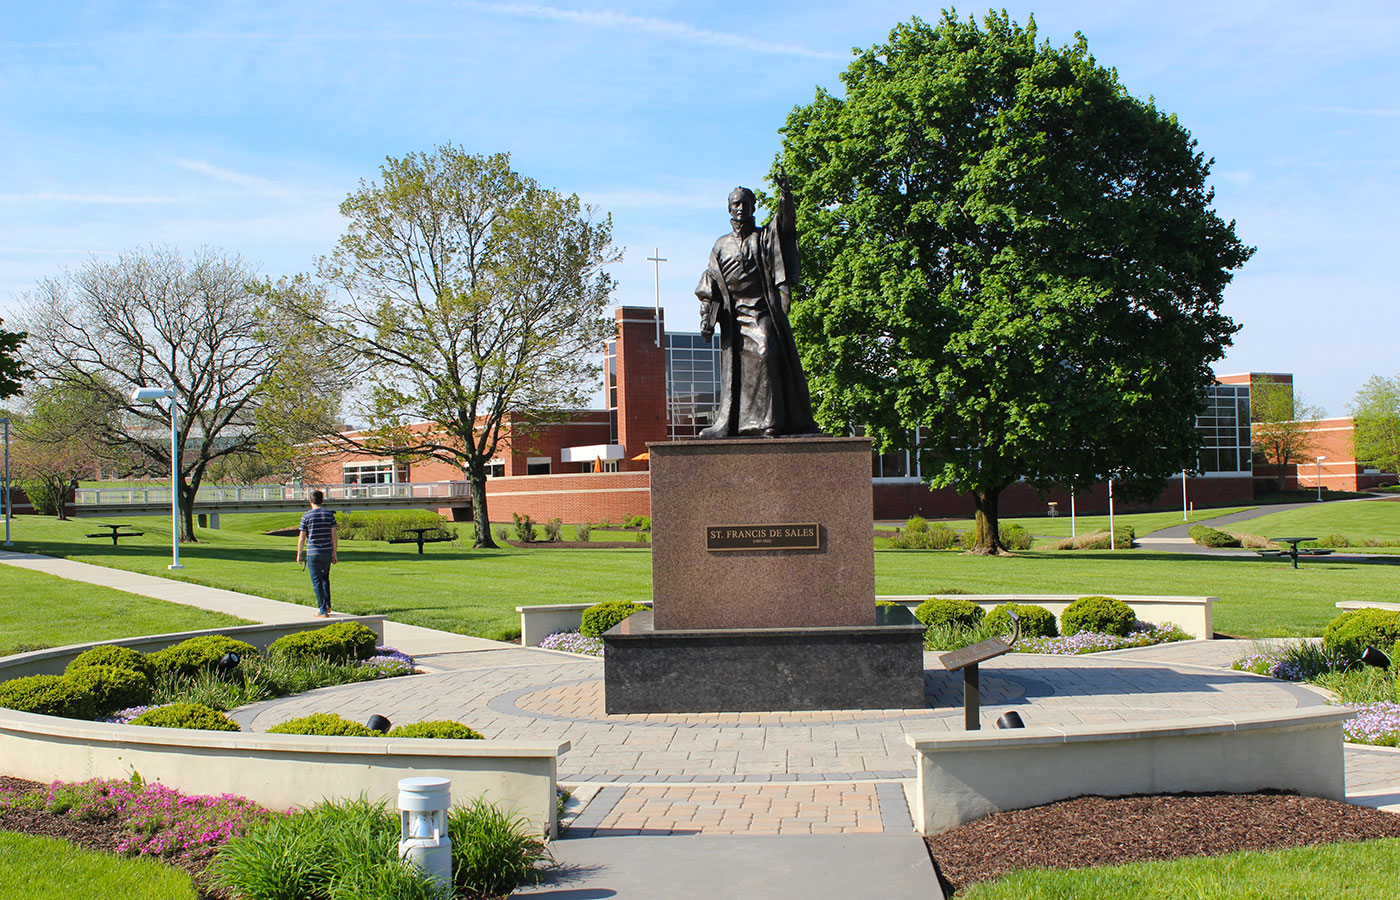 St Francis de Sales statue on campus